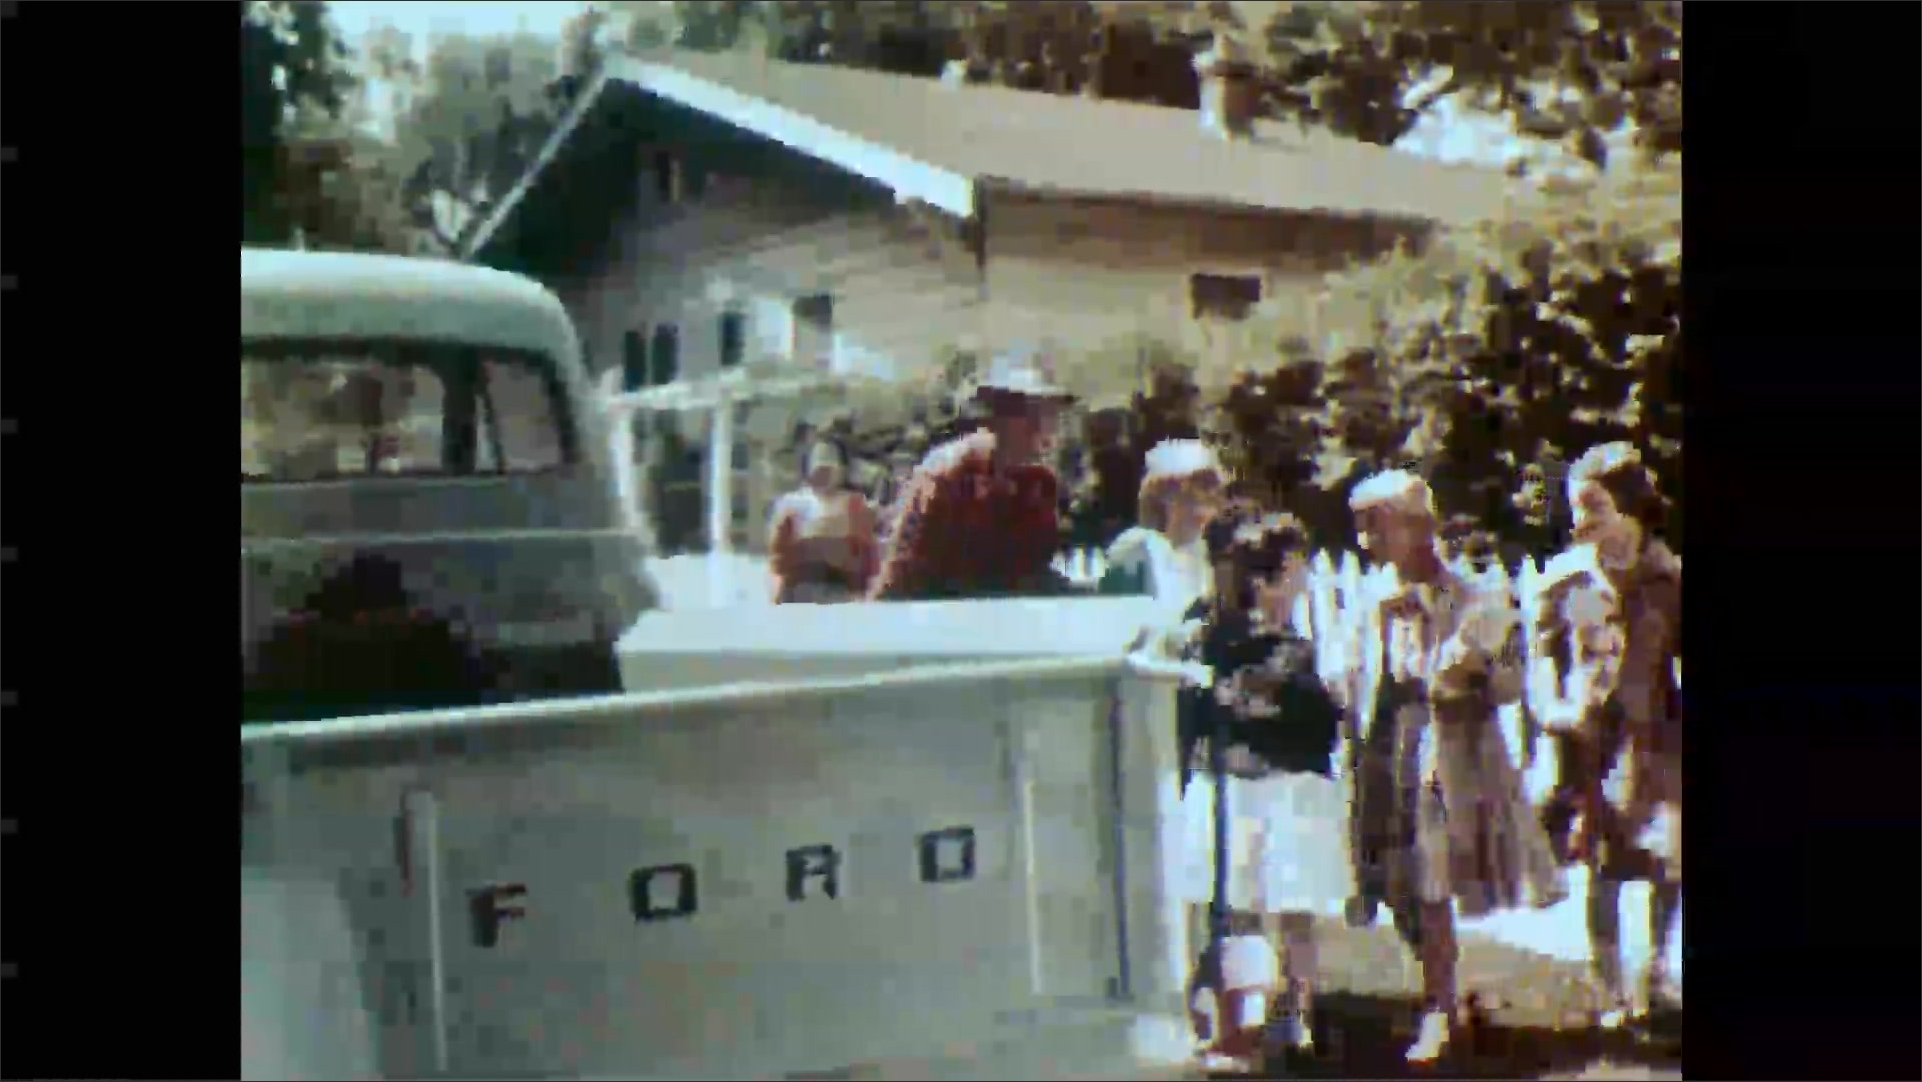 1950s: Girl runs toward and speaks to man and woman near fence. Man, woman and children walk towards truck. Man opens back of truck and retrieves black lamb. Girl looks into back of truck.